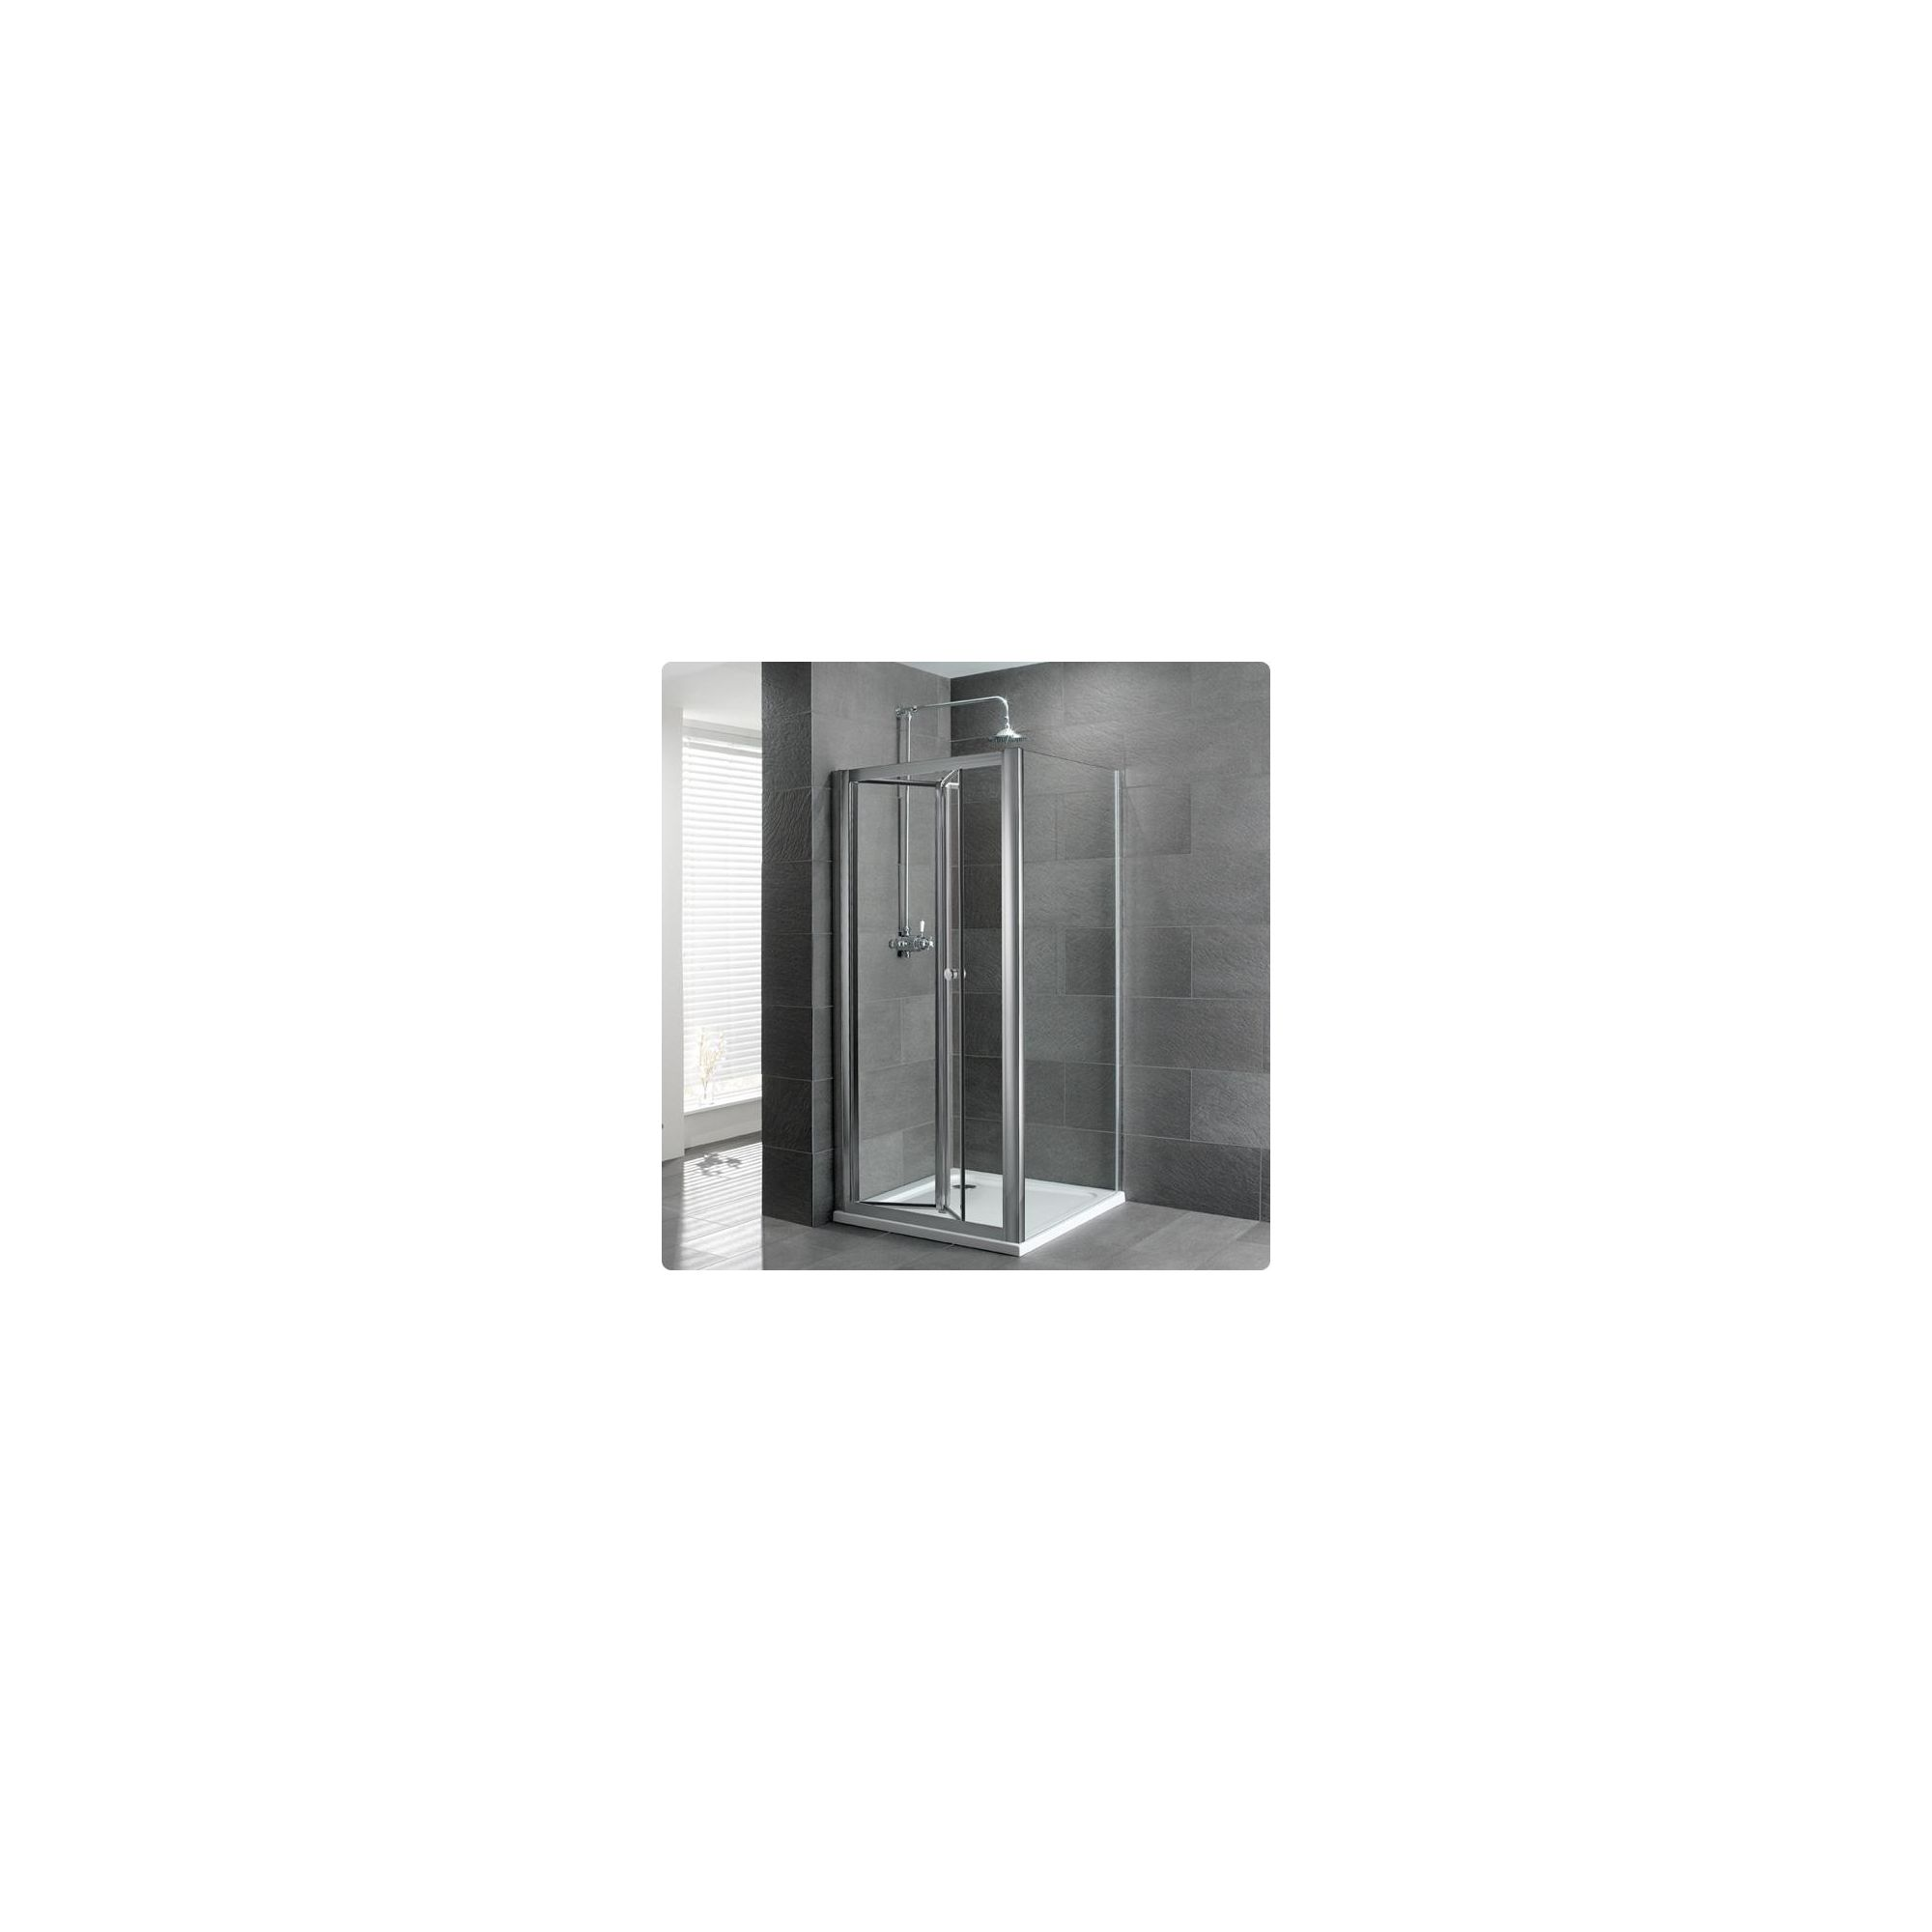 Duchy Select Silver Bi-Fold Door Shower Enclosure, 900mm x 700mm, Standard Tray, 6mm Glass at Tesco Direct